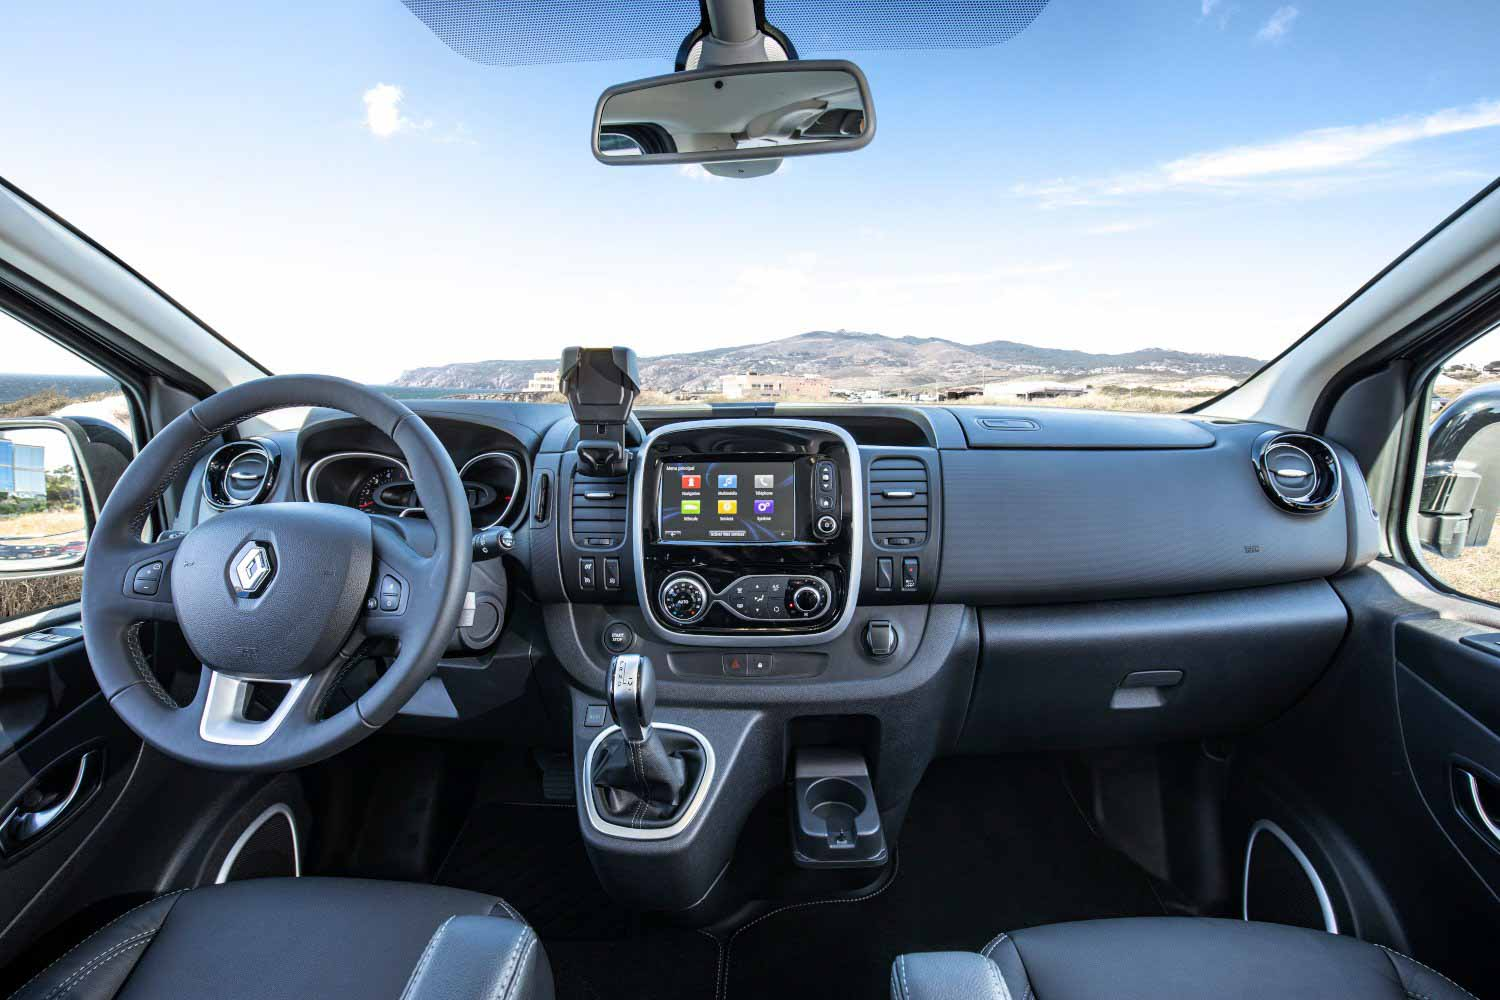 Renault Trafic 2021 год